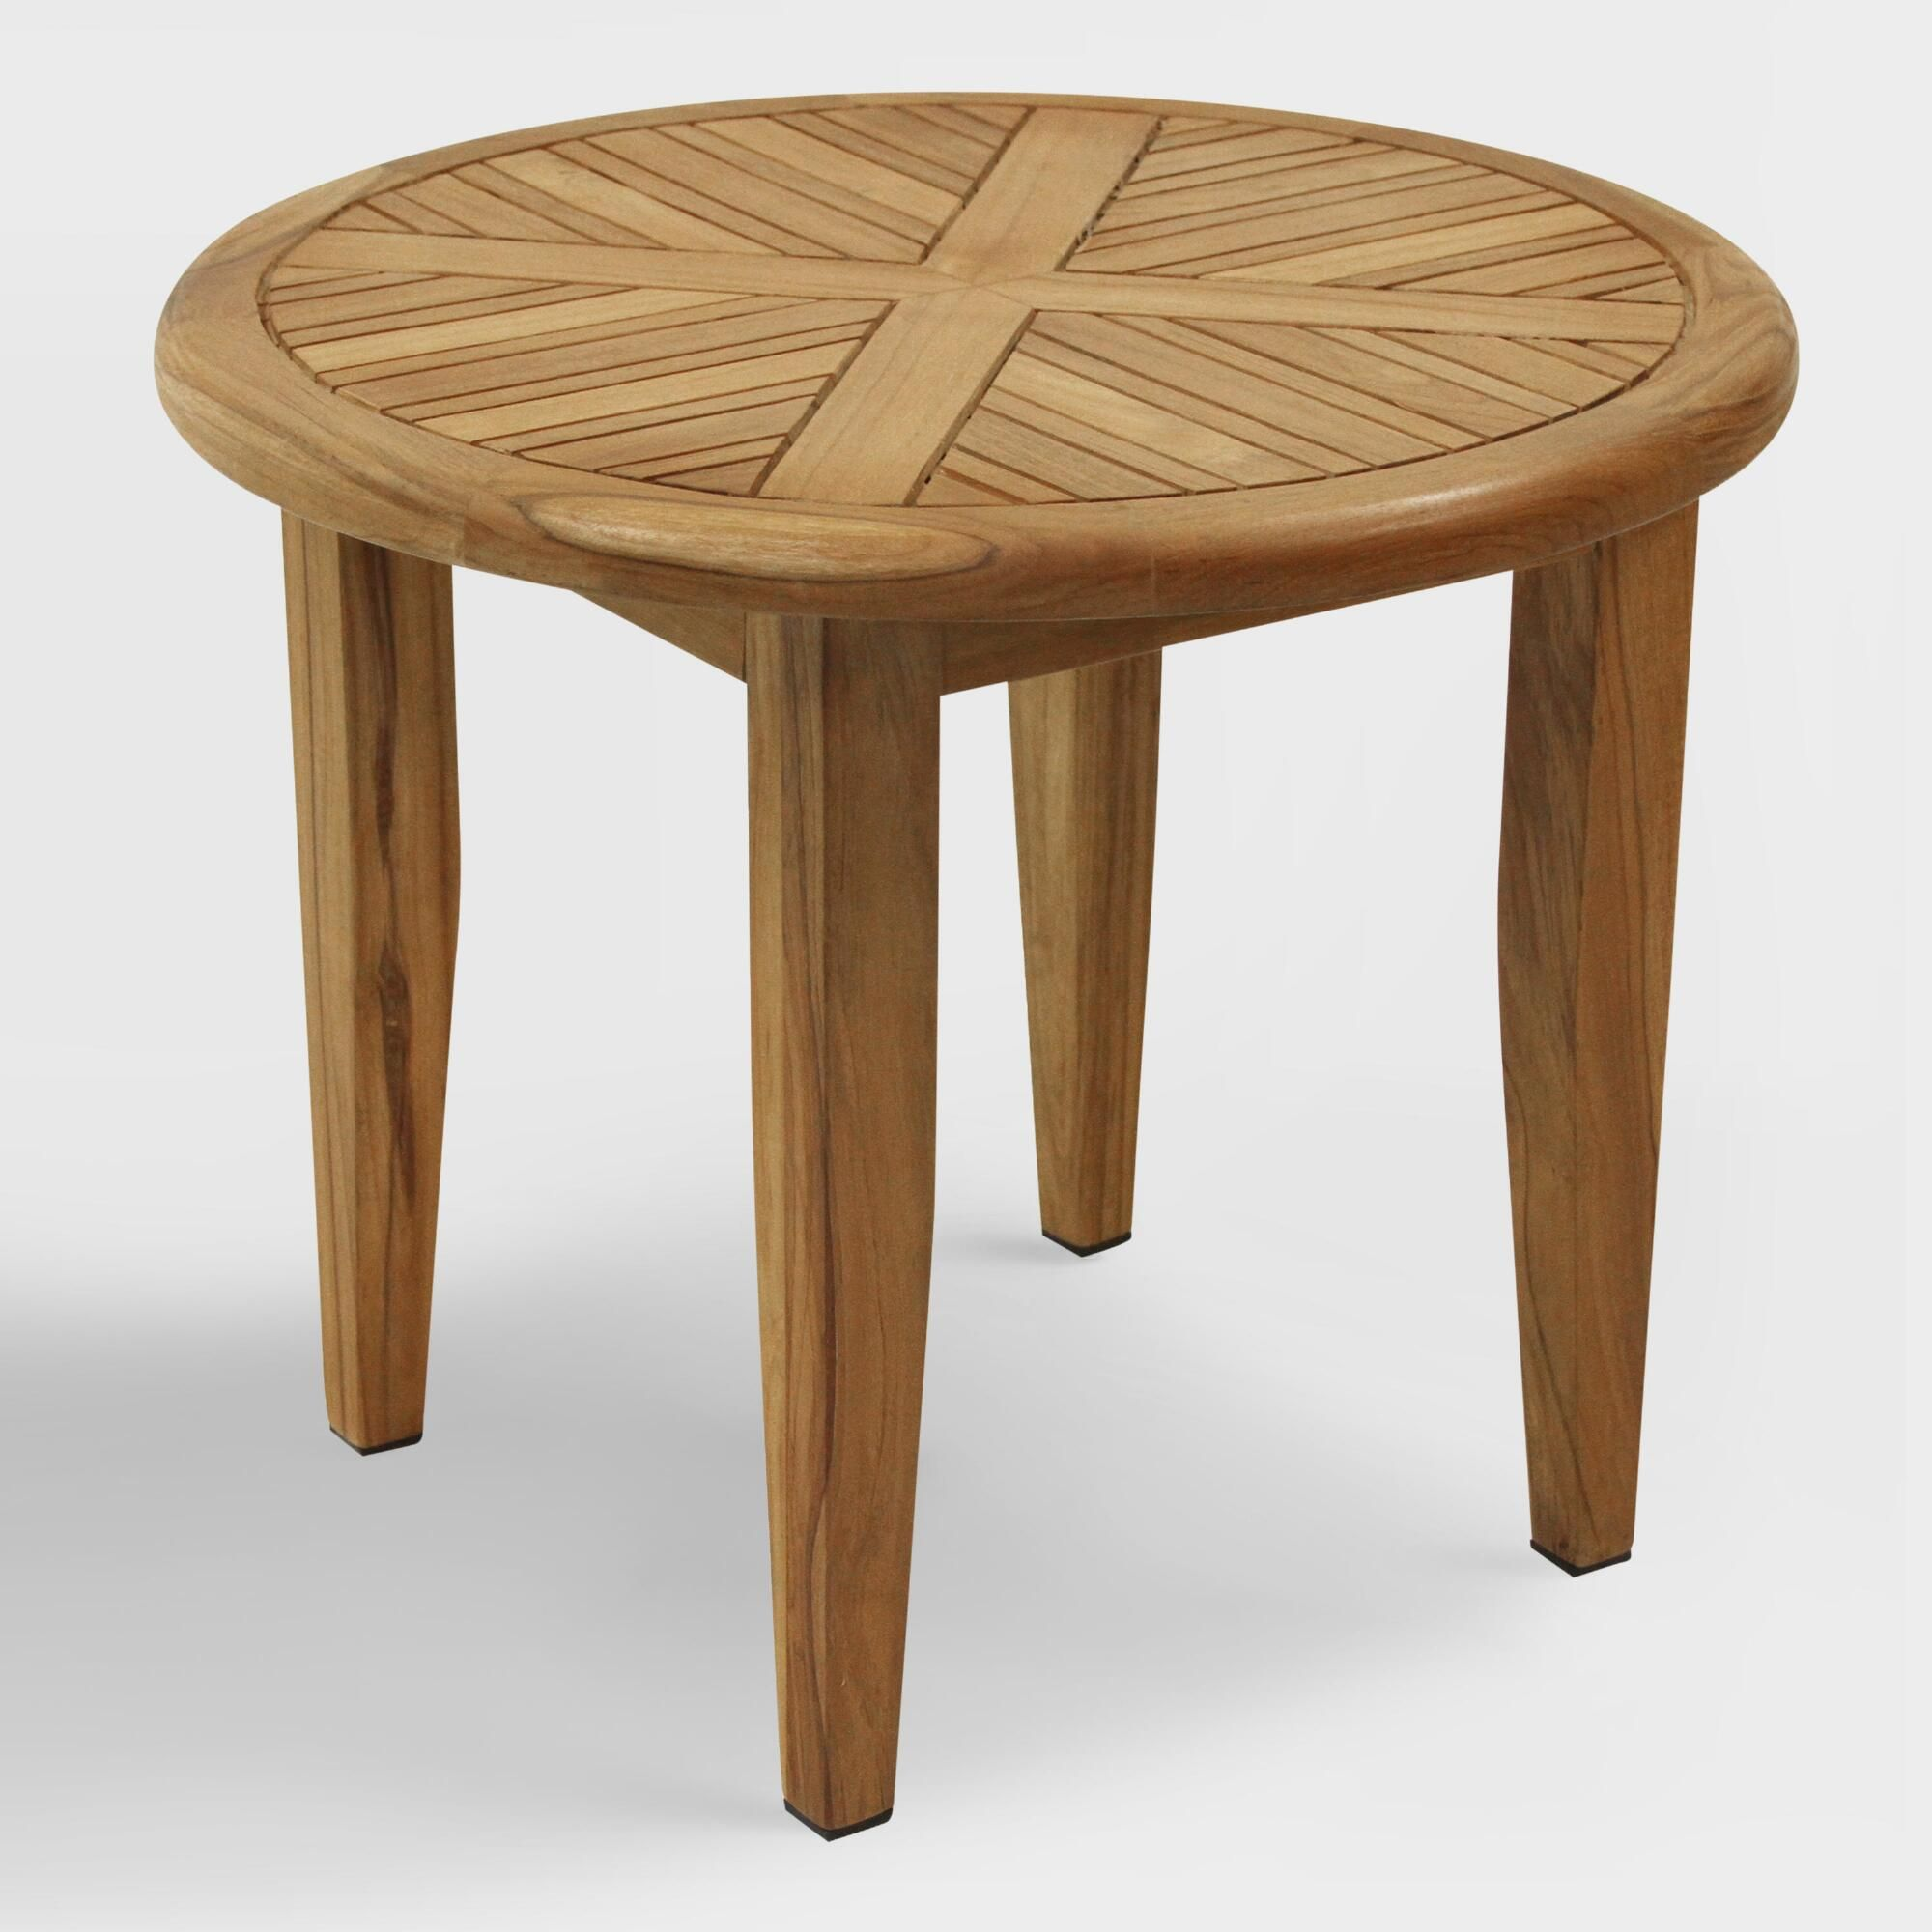 round teak wood hakui lounging accent table world market outdoor oak console narrow foyer mosaic garden side foosball diy large coffee unique chairs chest furniture corner patio